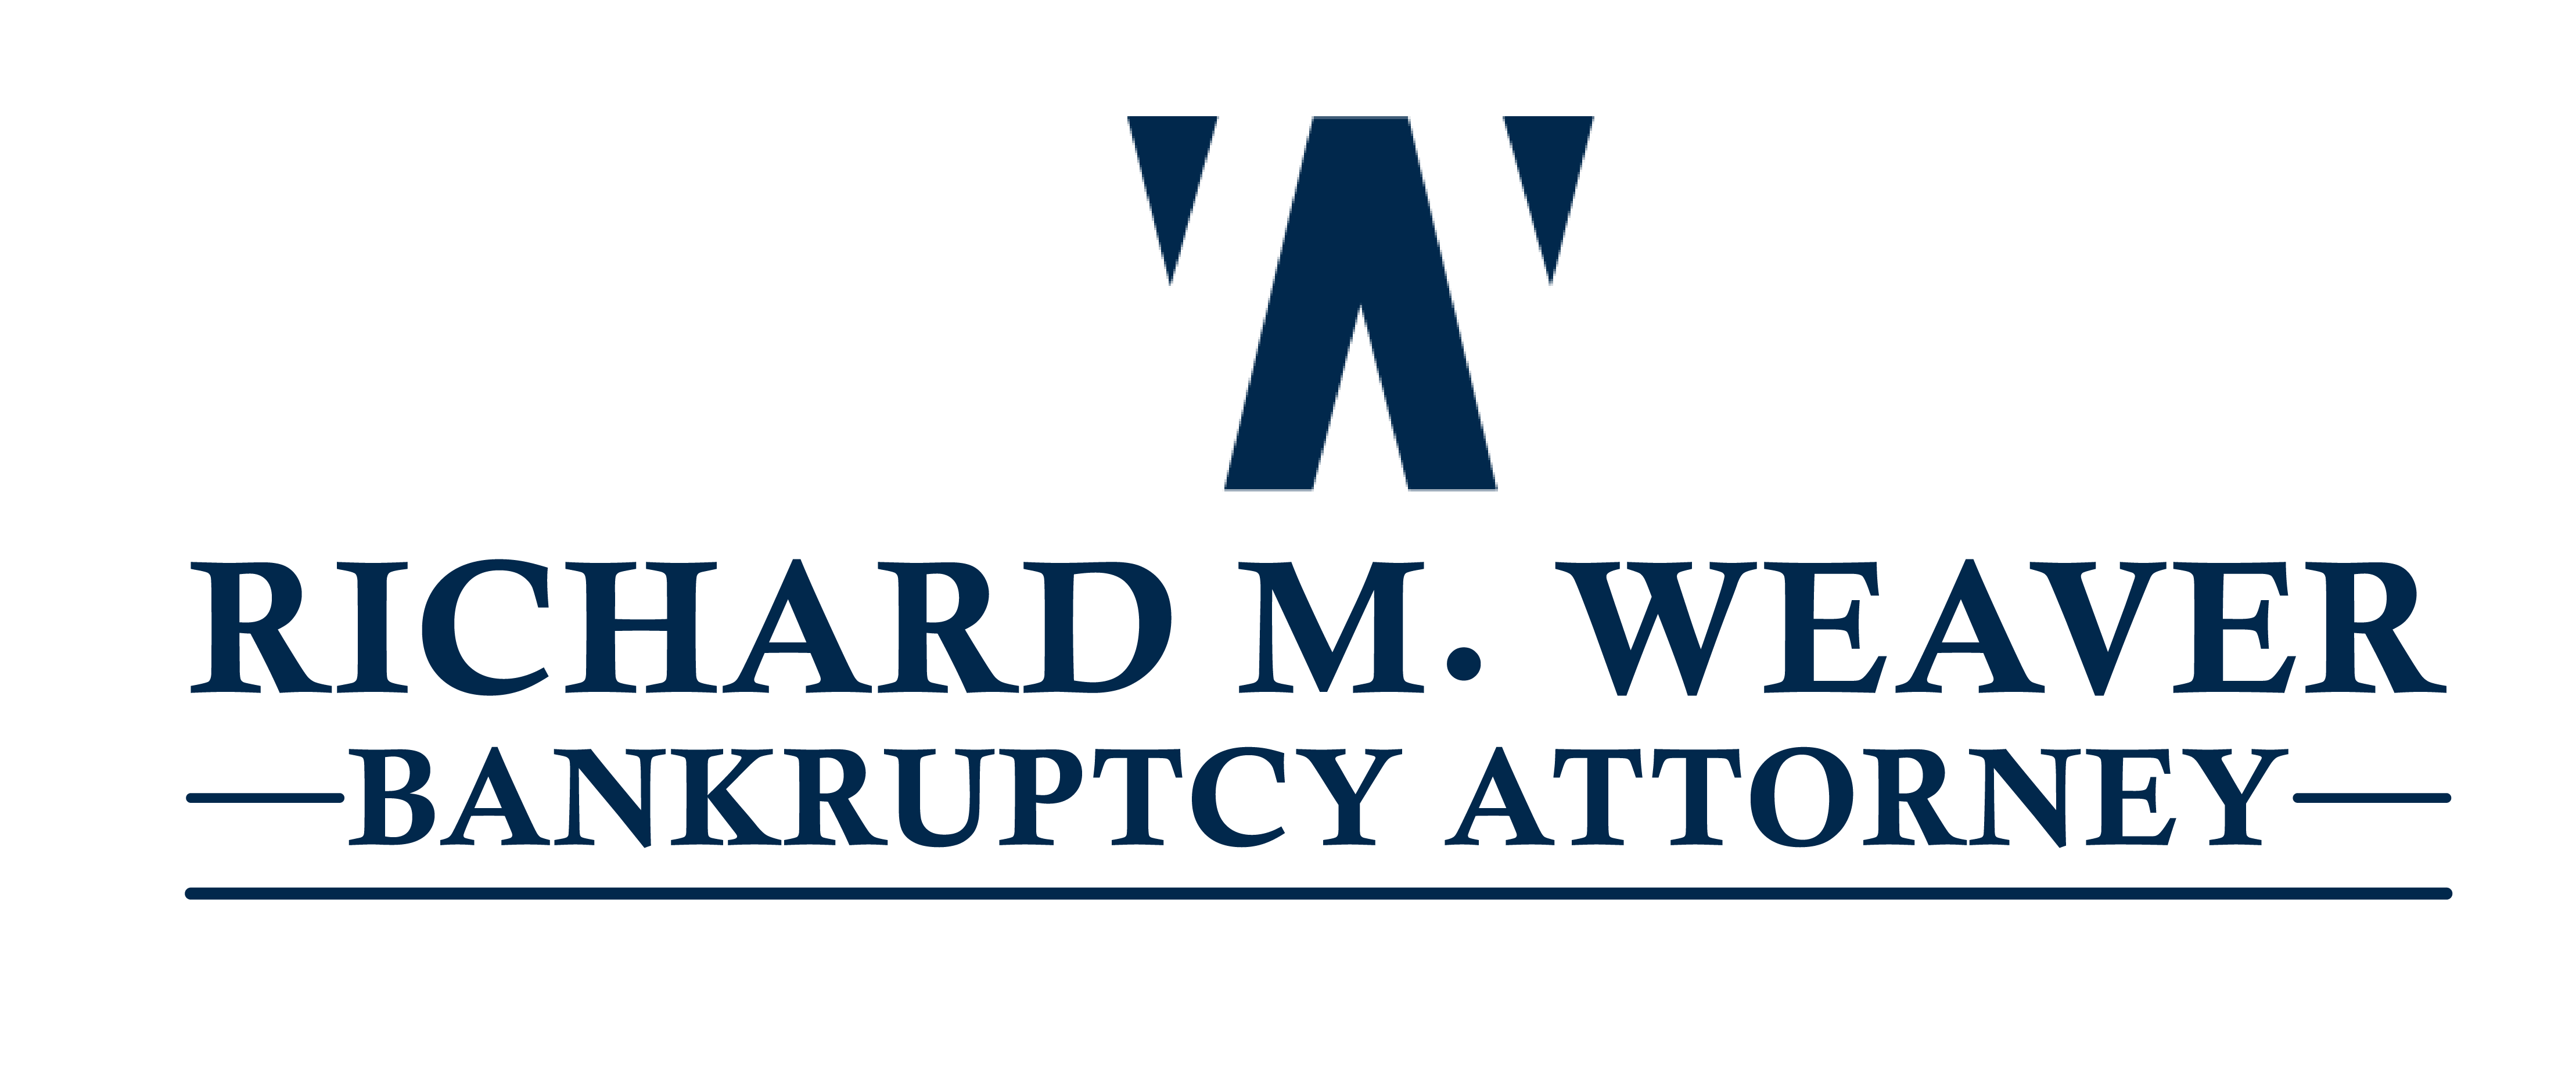 Richard M. Weaver Bankruptcy Attorney is Helping Clients Navigate Their Financial Troubles Through Bankruptcy in Haltom City 6